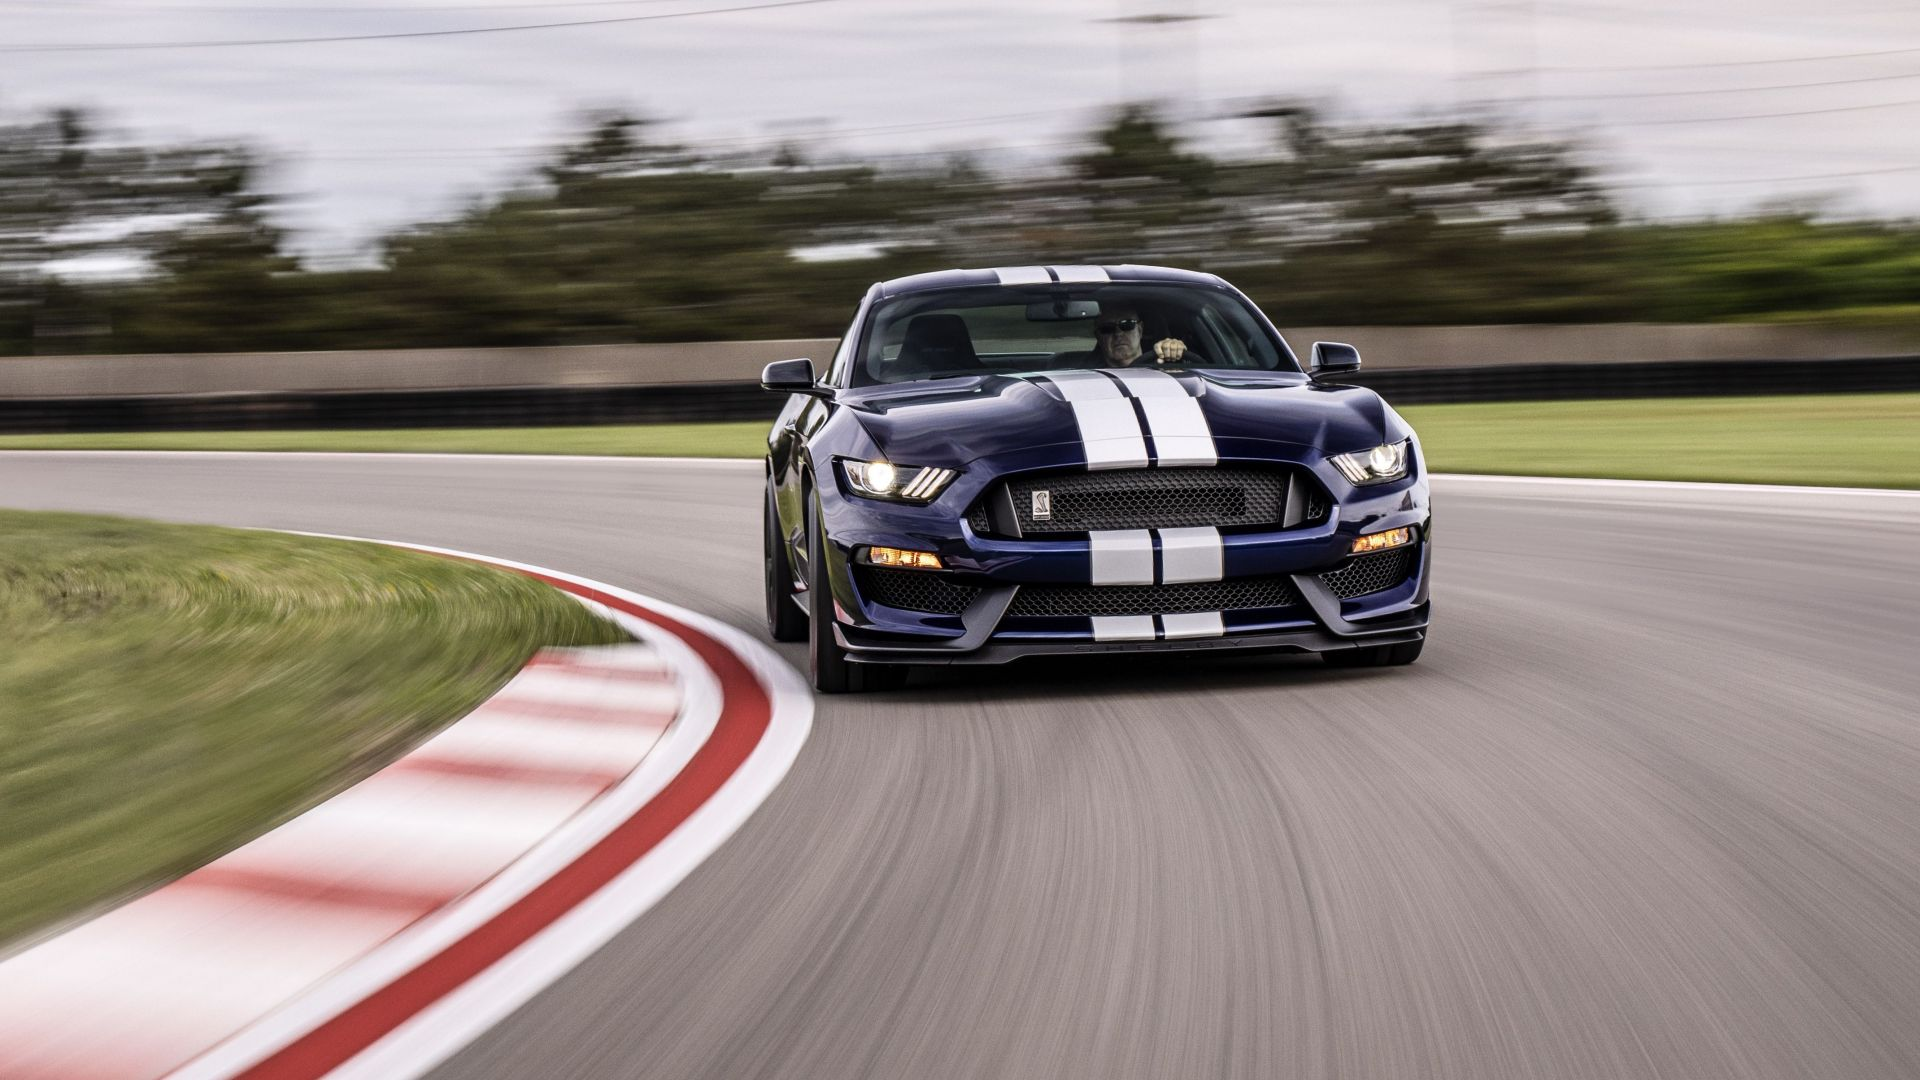 Ford Mustang Shelby GT350, 2019 Cars, 4K (horizontal)